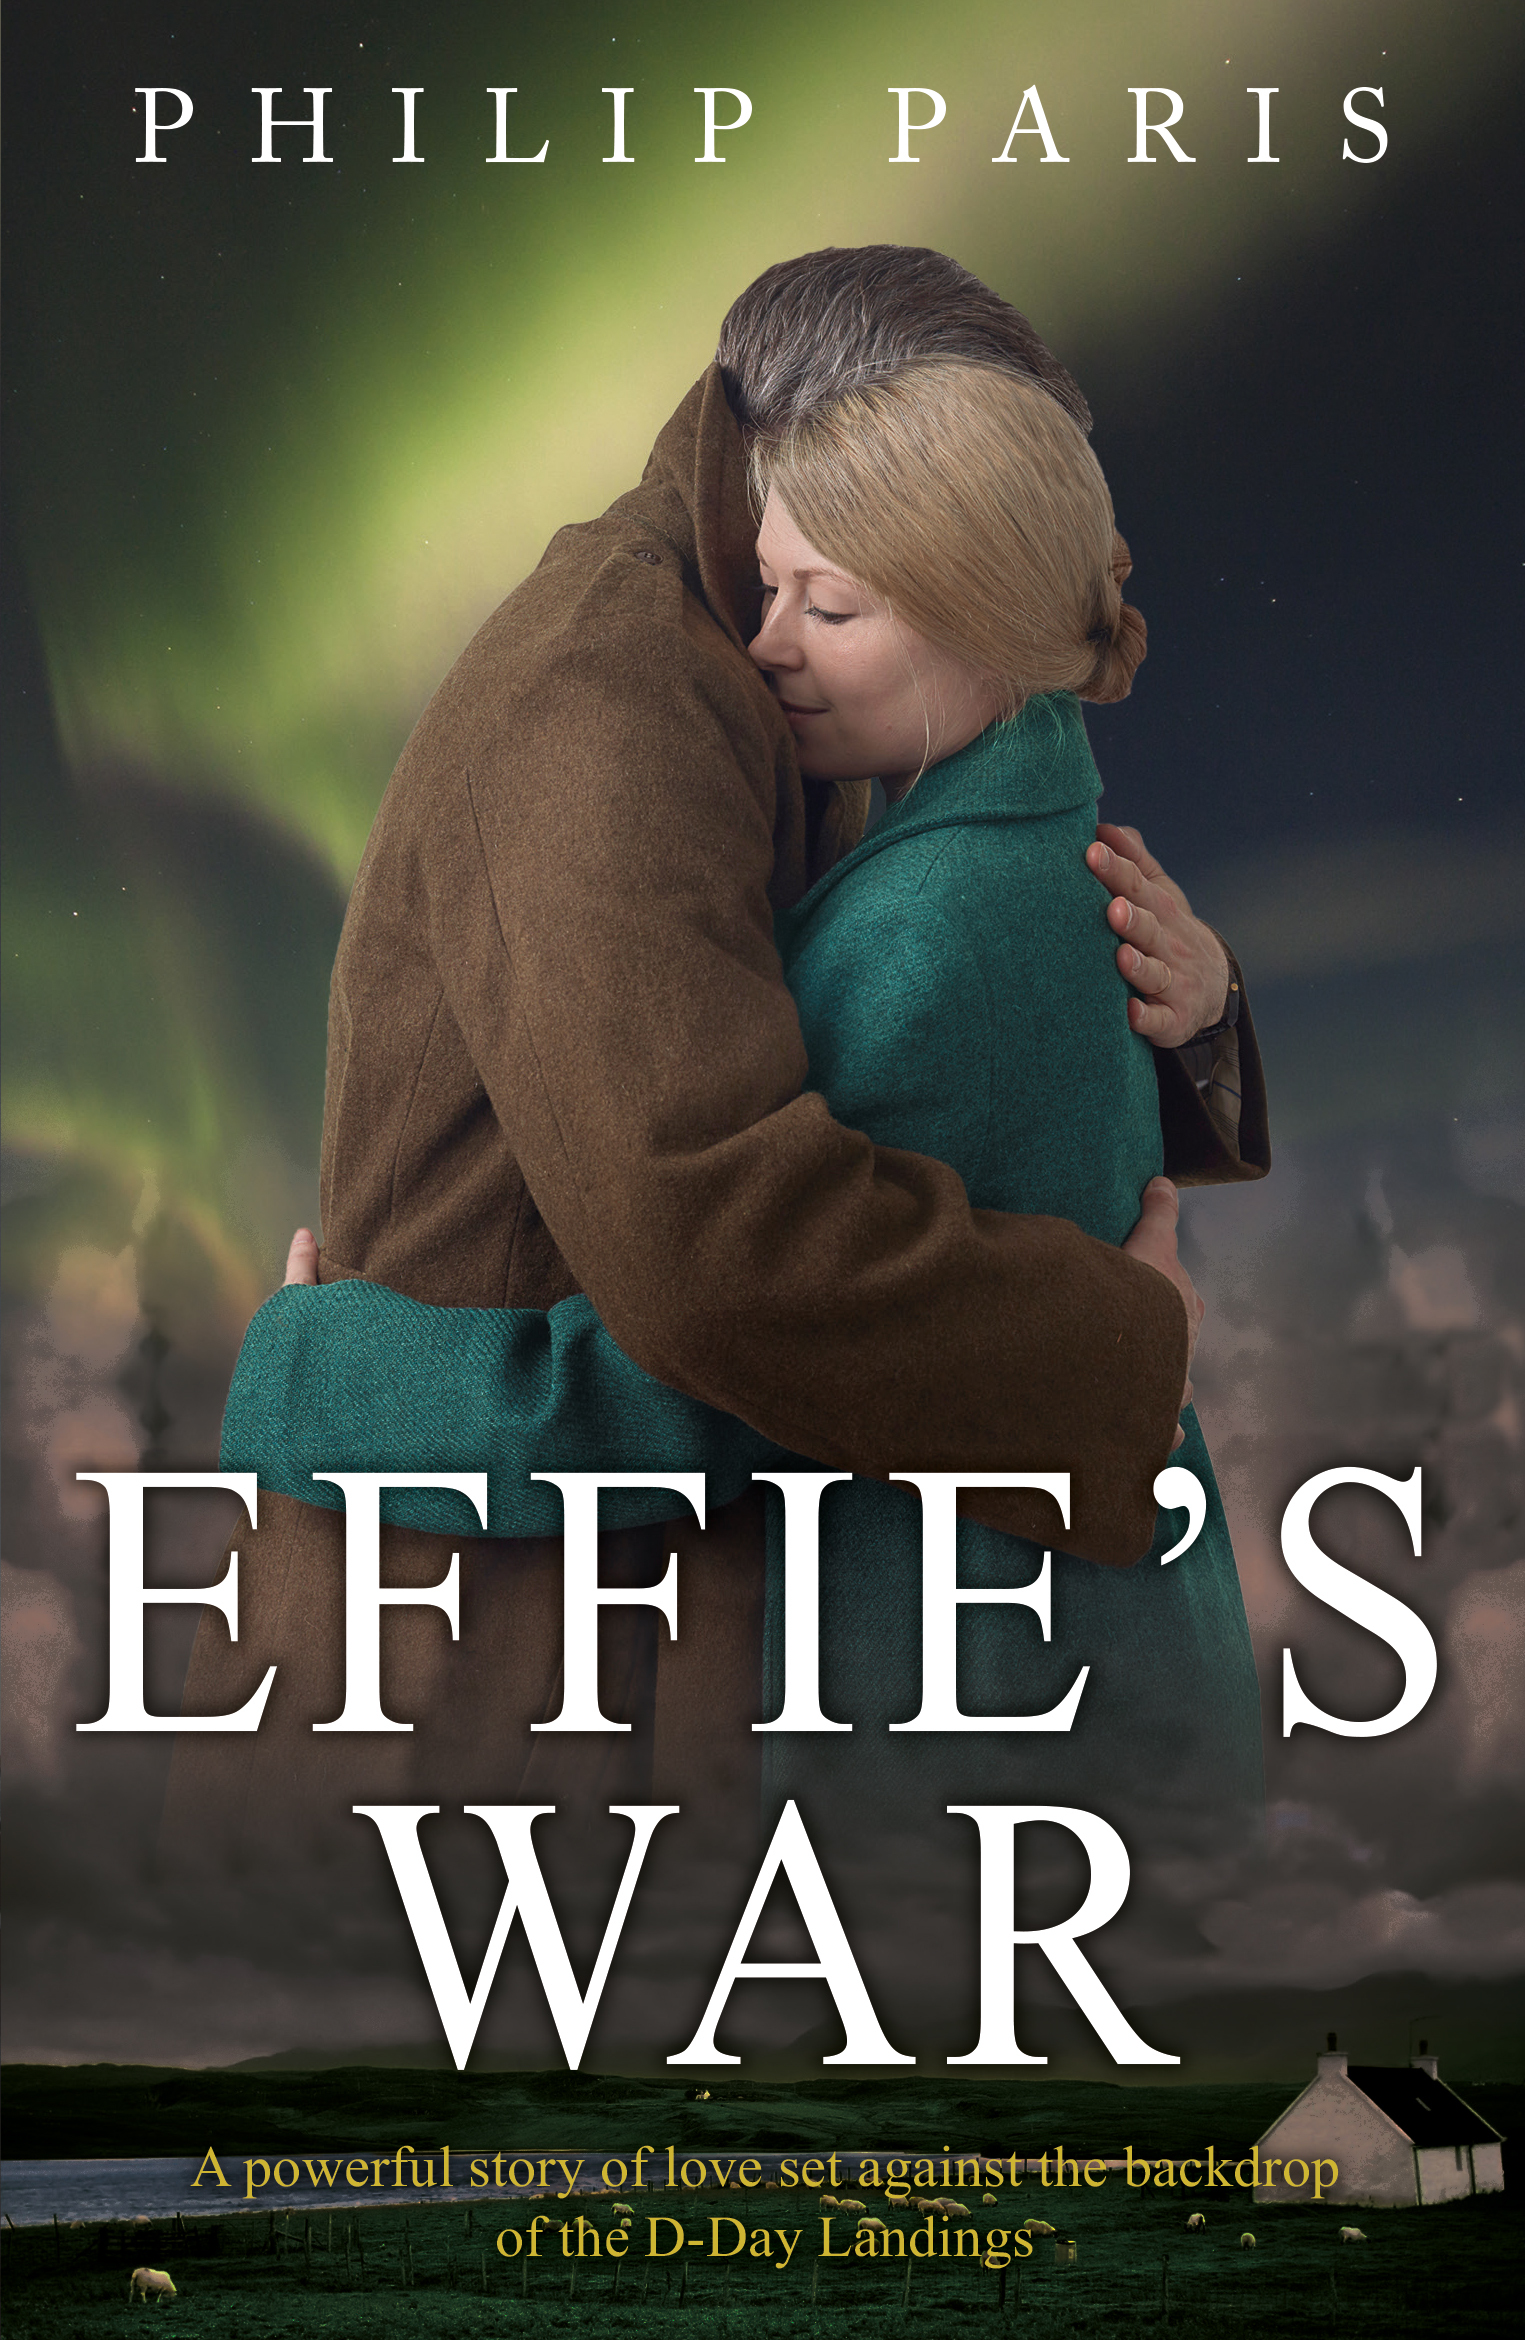 Effies_War